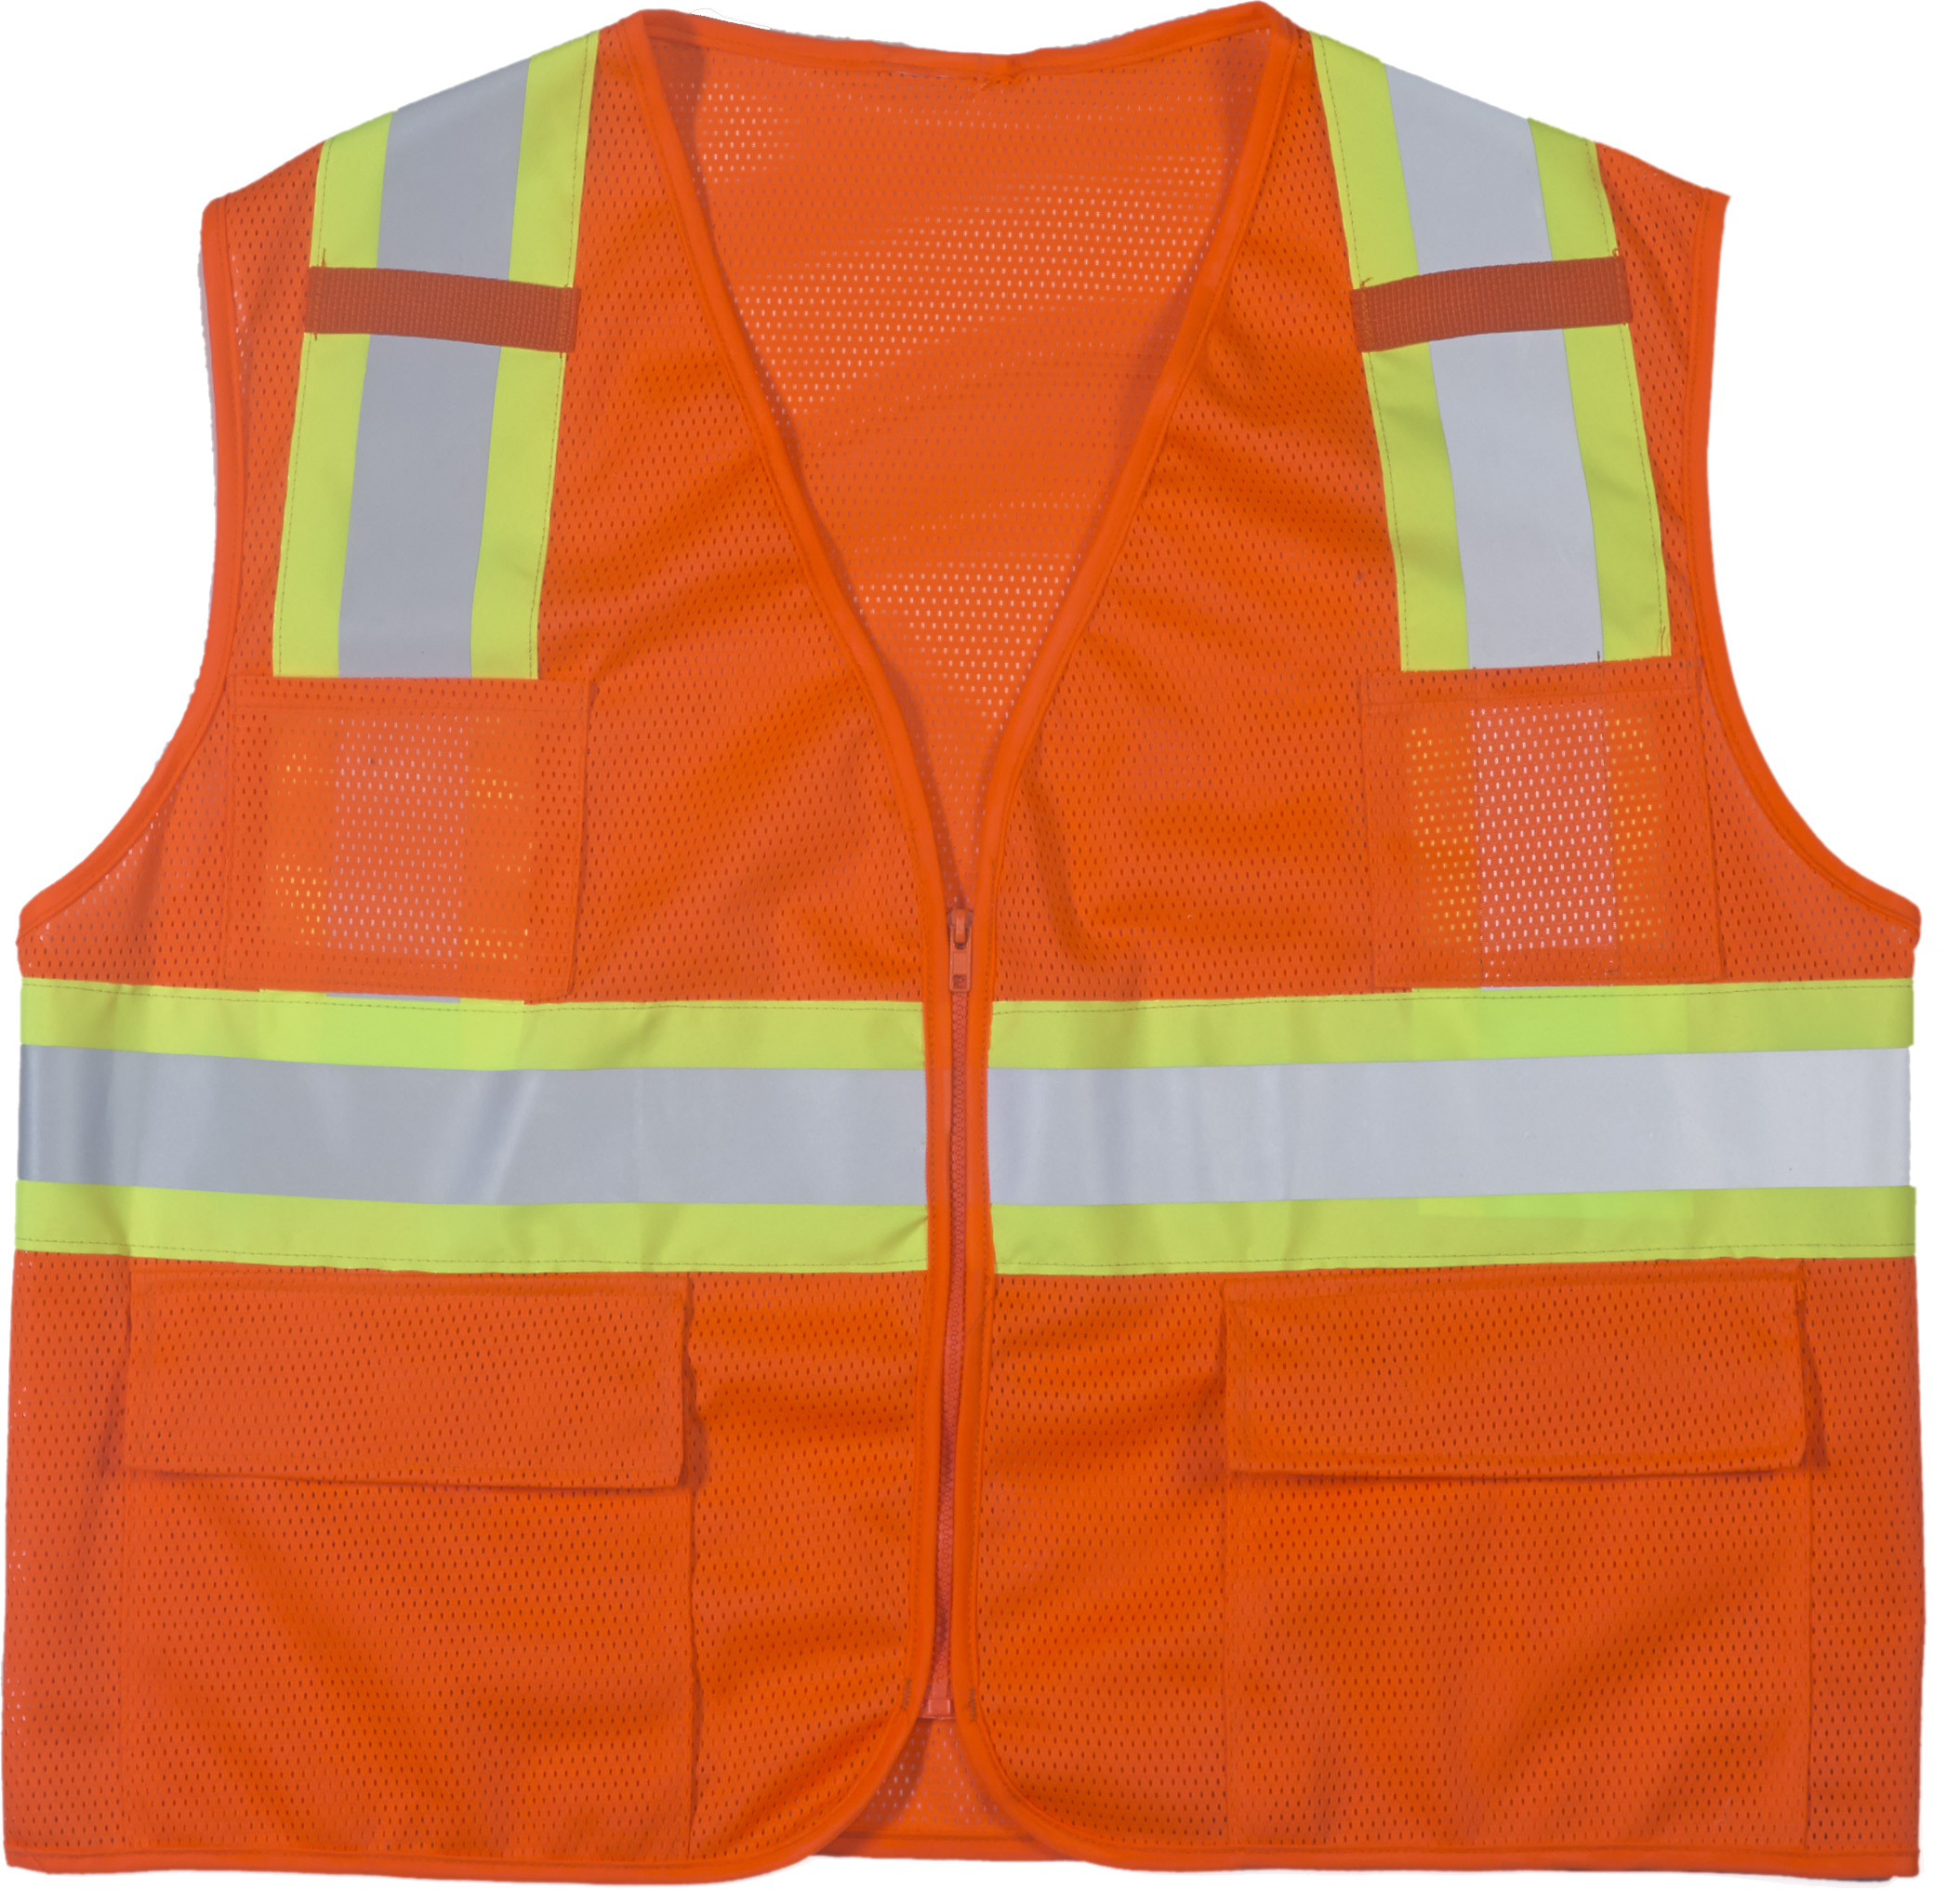 "High Visibility Polyester ANSI Class 2 Surveyor Safety Vest with Pouch Pockets and 4"" Lime/Silver/Lime Reflective Tape, 3X-Large, Orange"